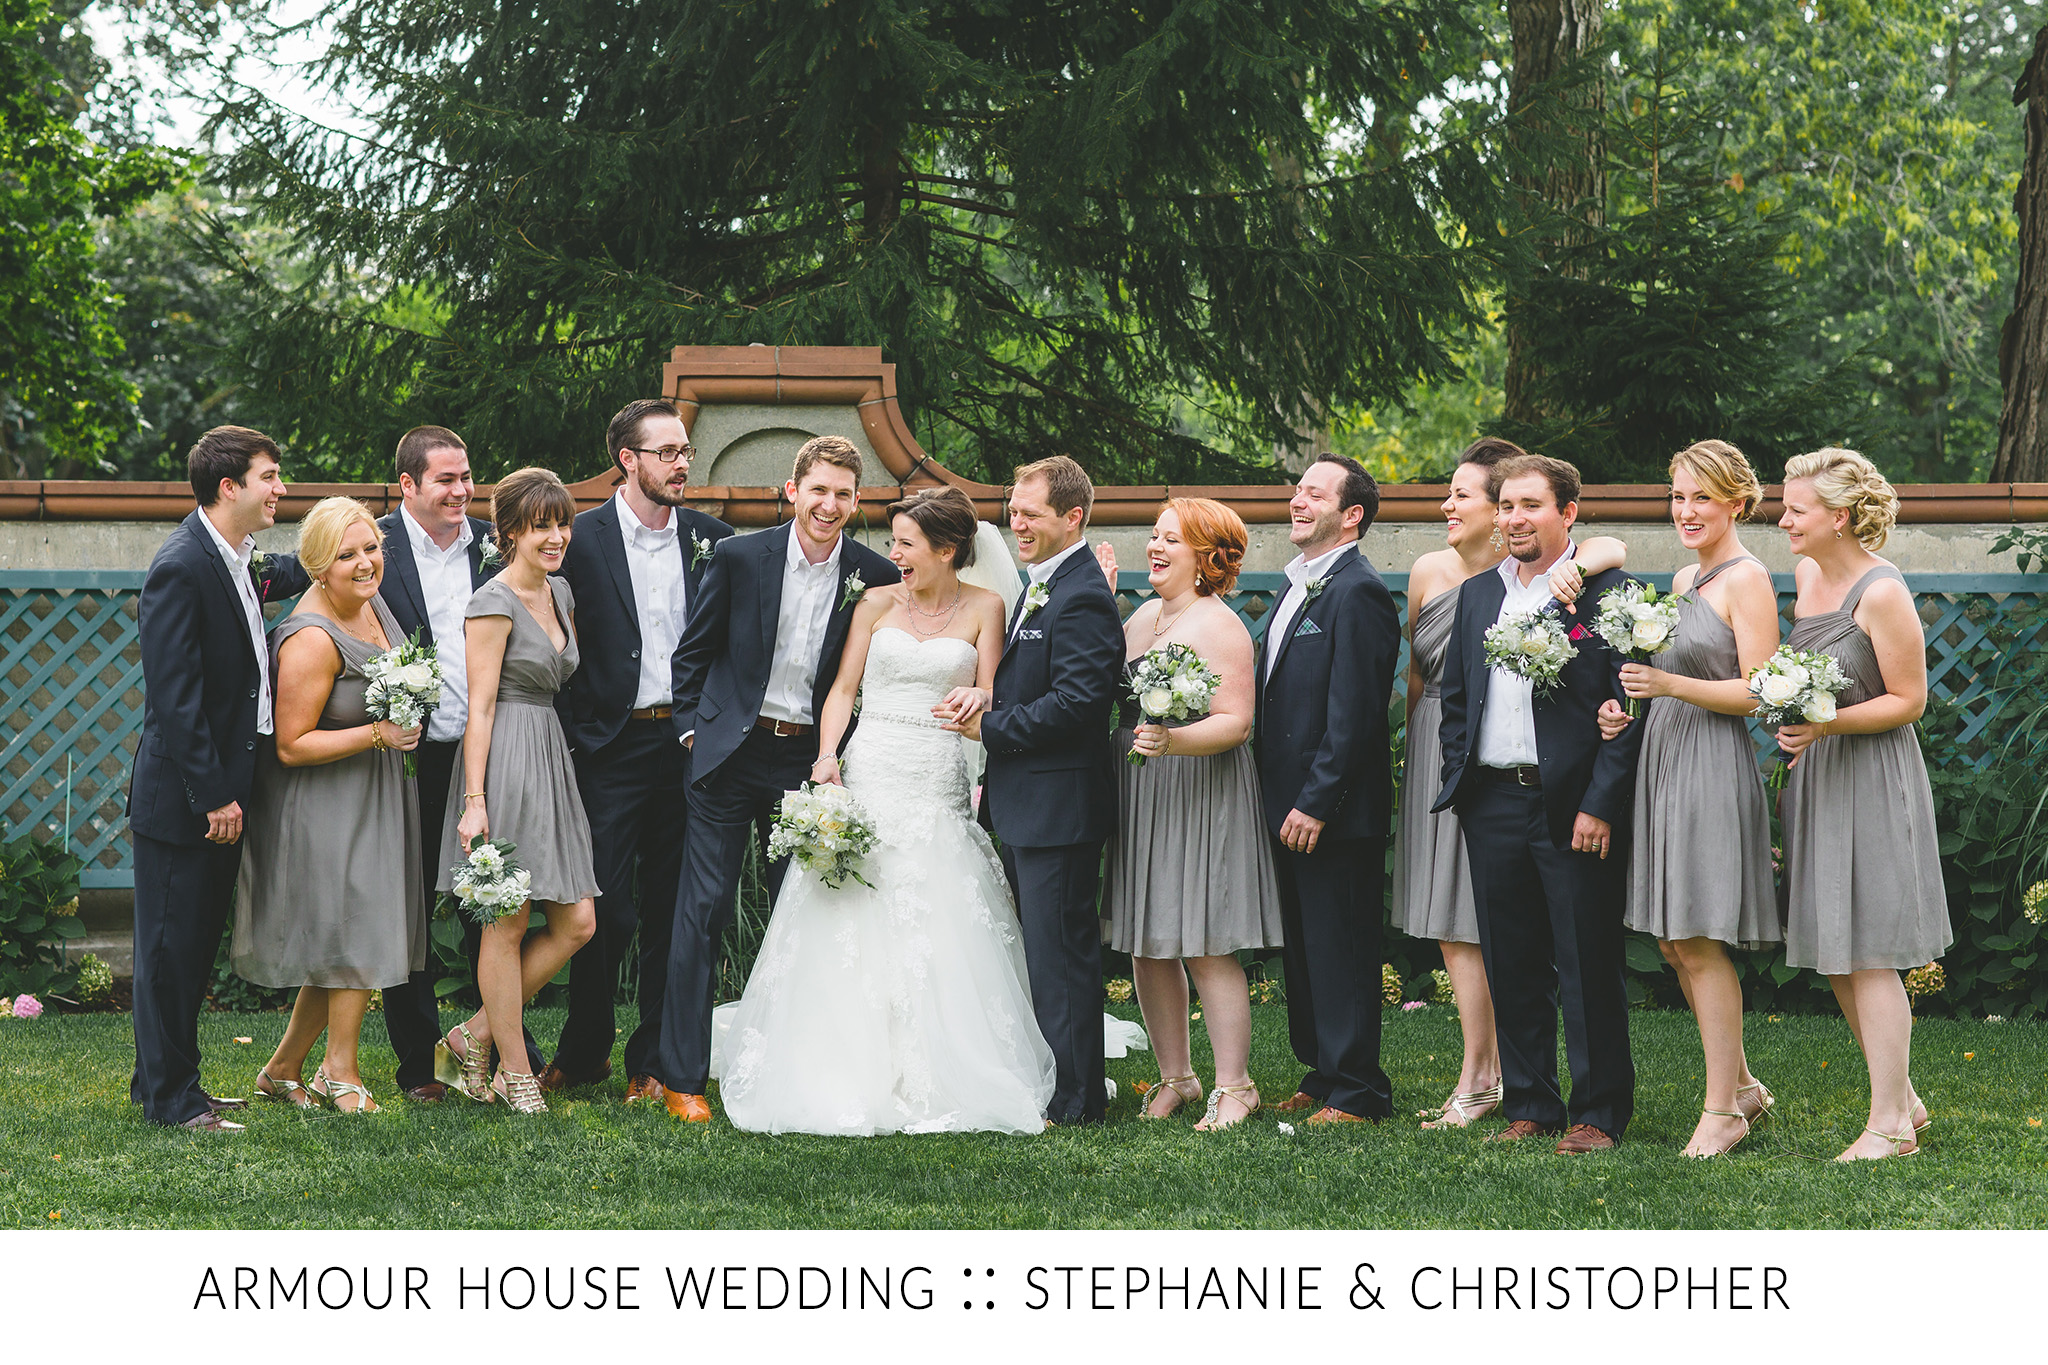 Armour House Wedding